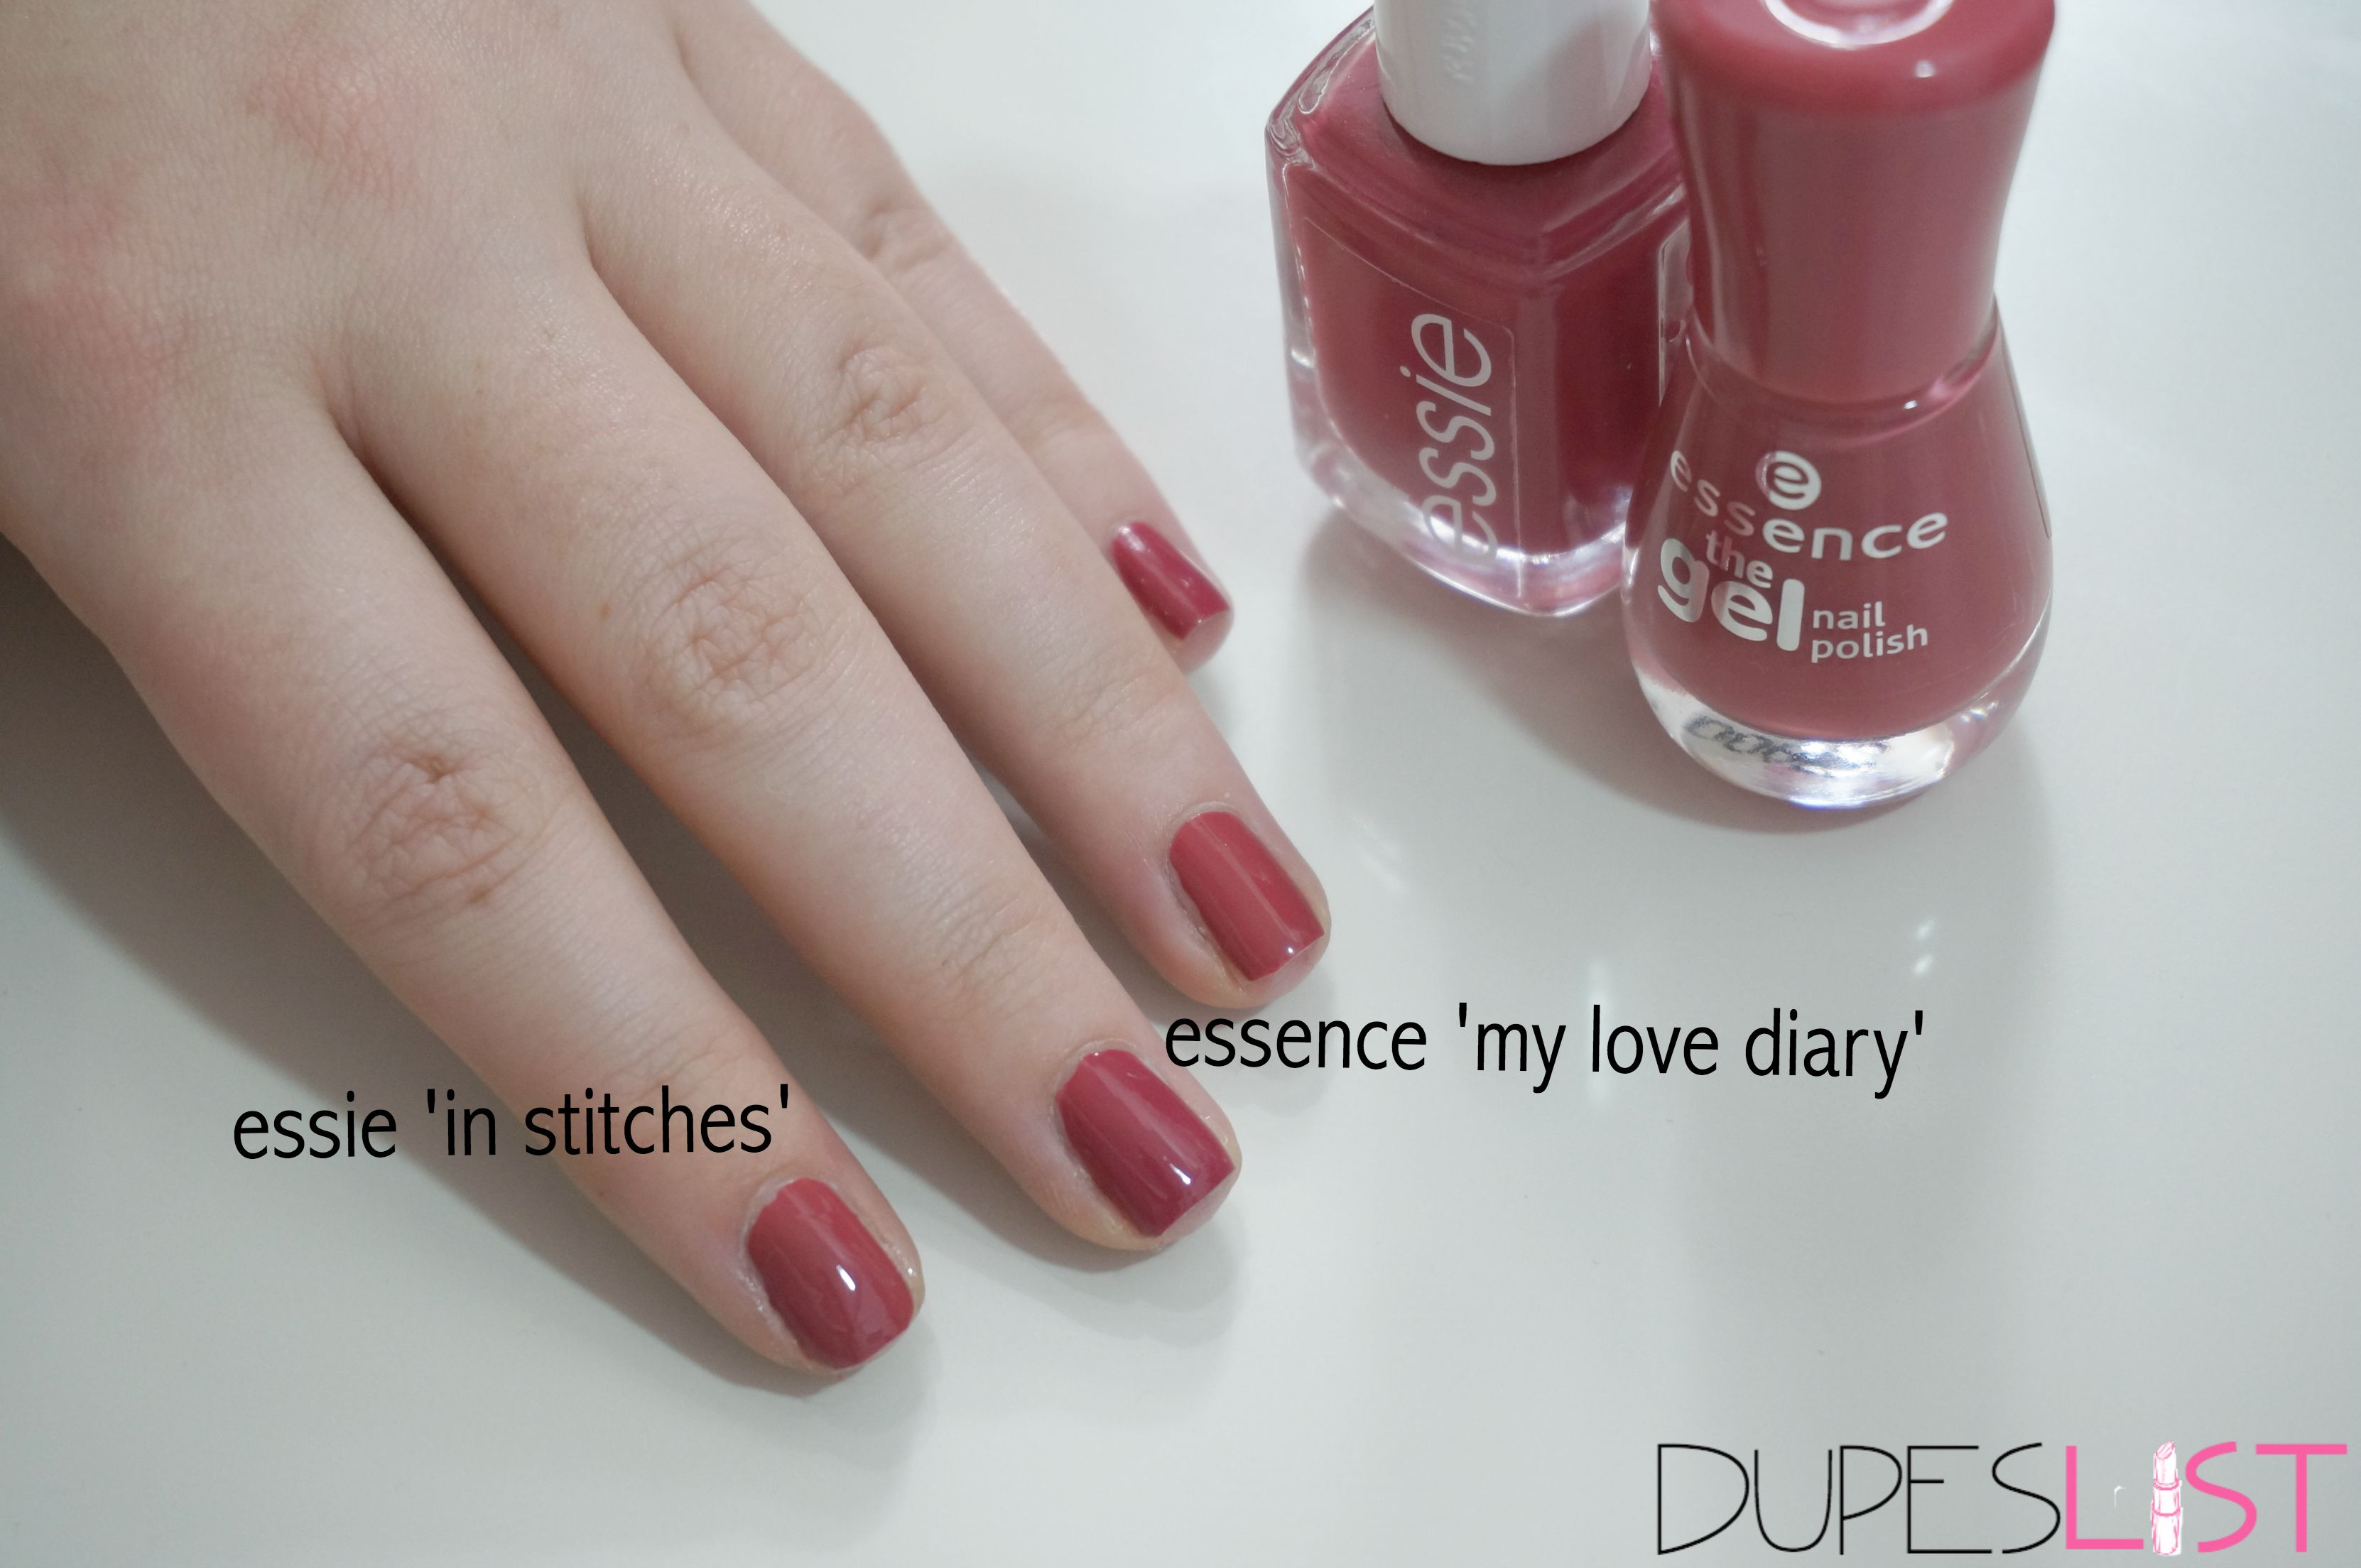 essie in stitches dupe - nail polish essence cosmetics my love diary ...